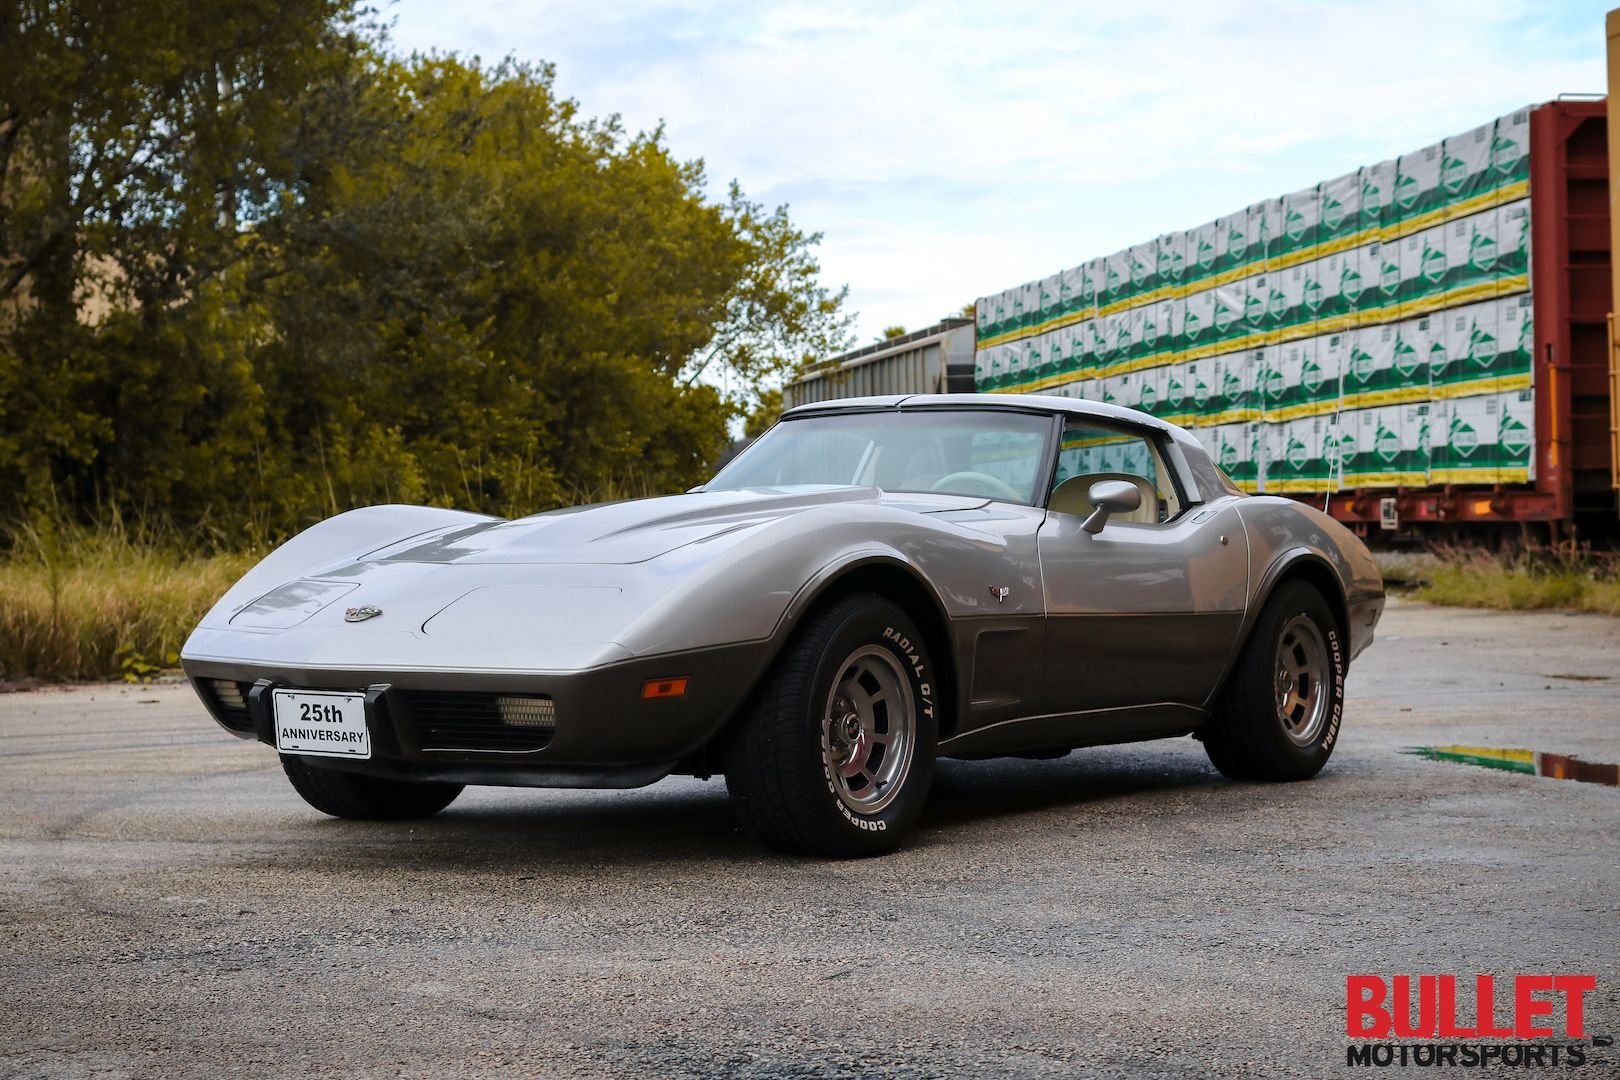 1978 chevrolet corvette 25th anniversary edition